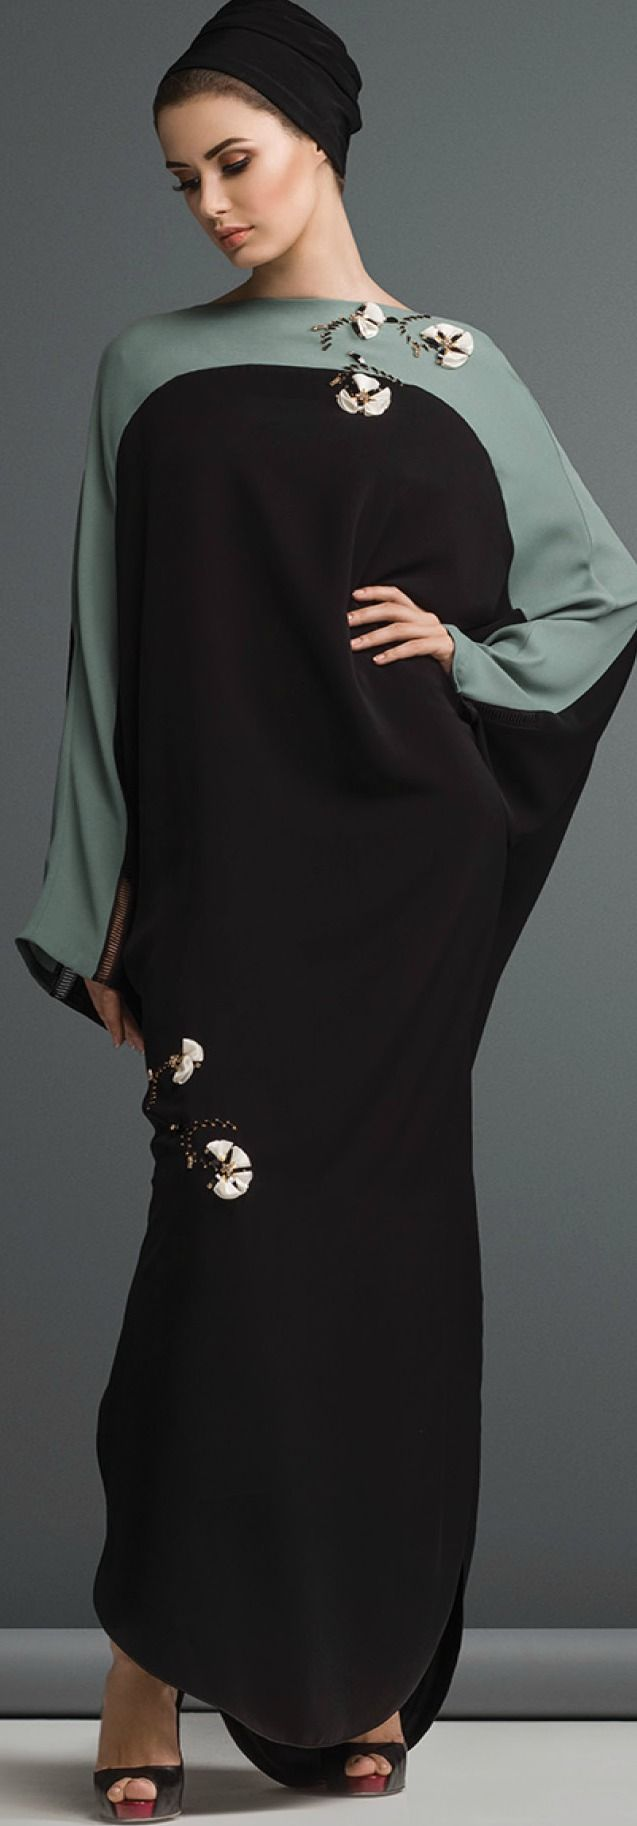 Mauzan abaya.Color blocking + Embellishment of flower with crystal and beads